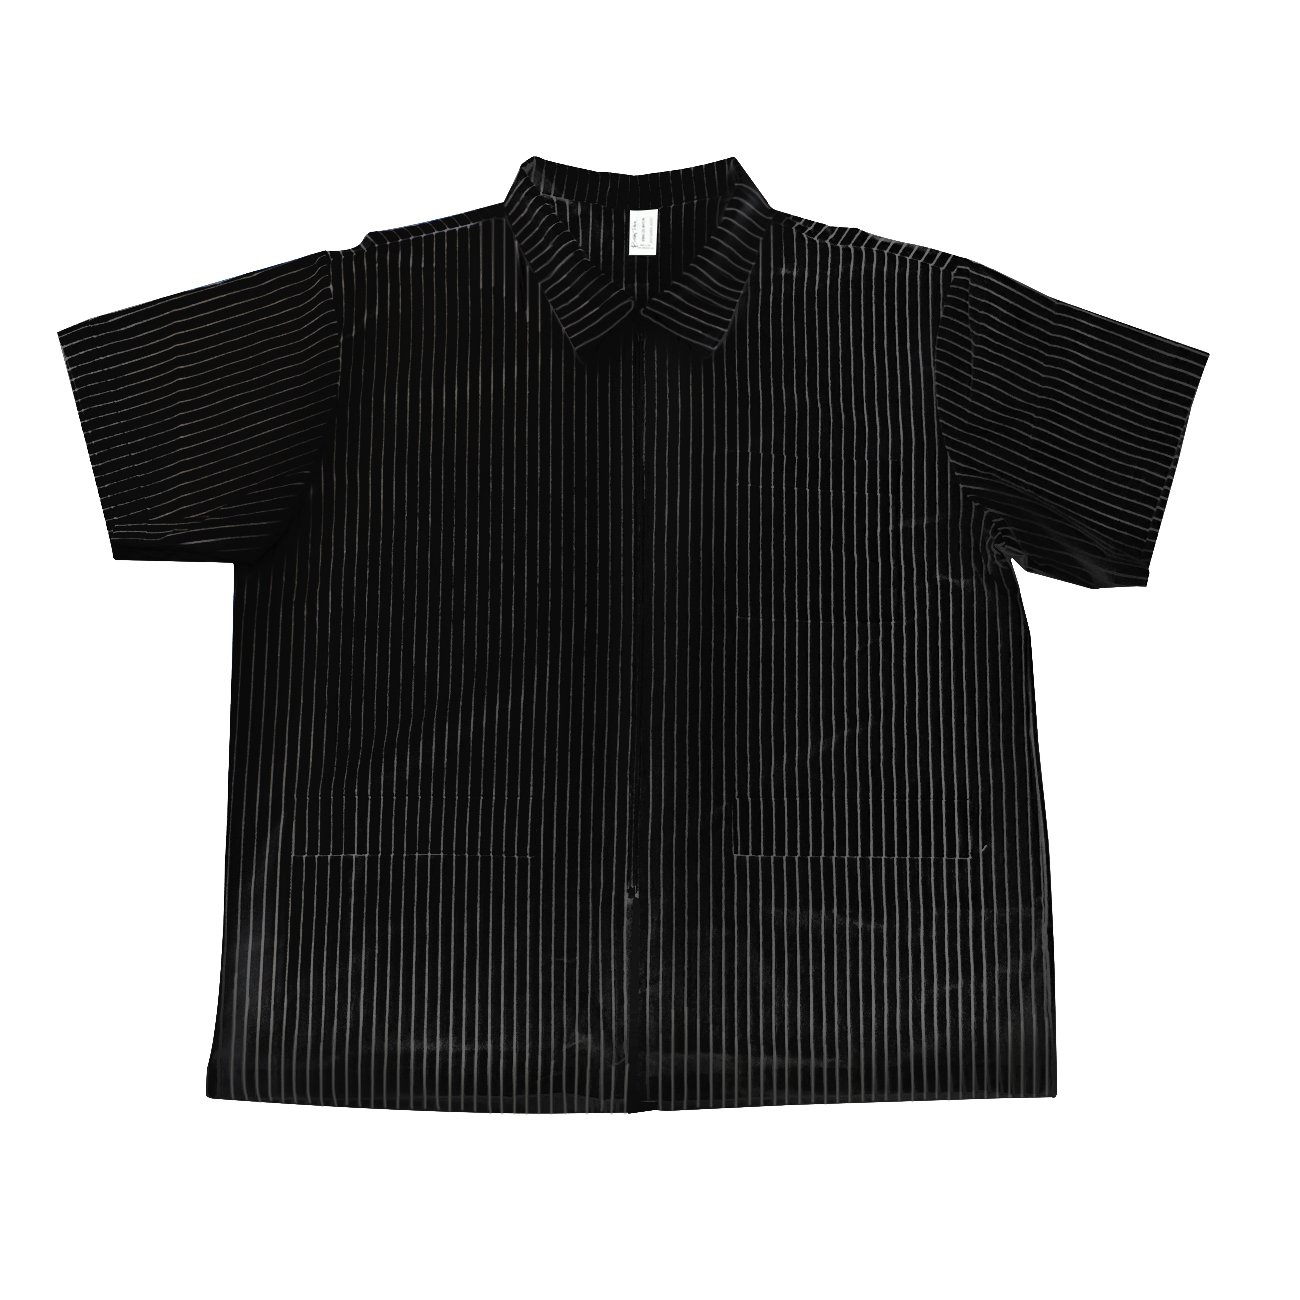 Betty Dain Signature MVP Barber Jacket, Black with White Stripes, X-Large, 1-Pound by Betty Dain